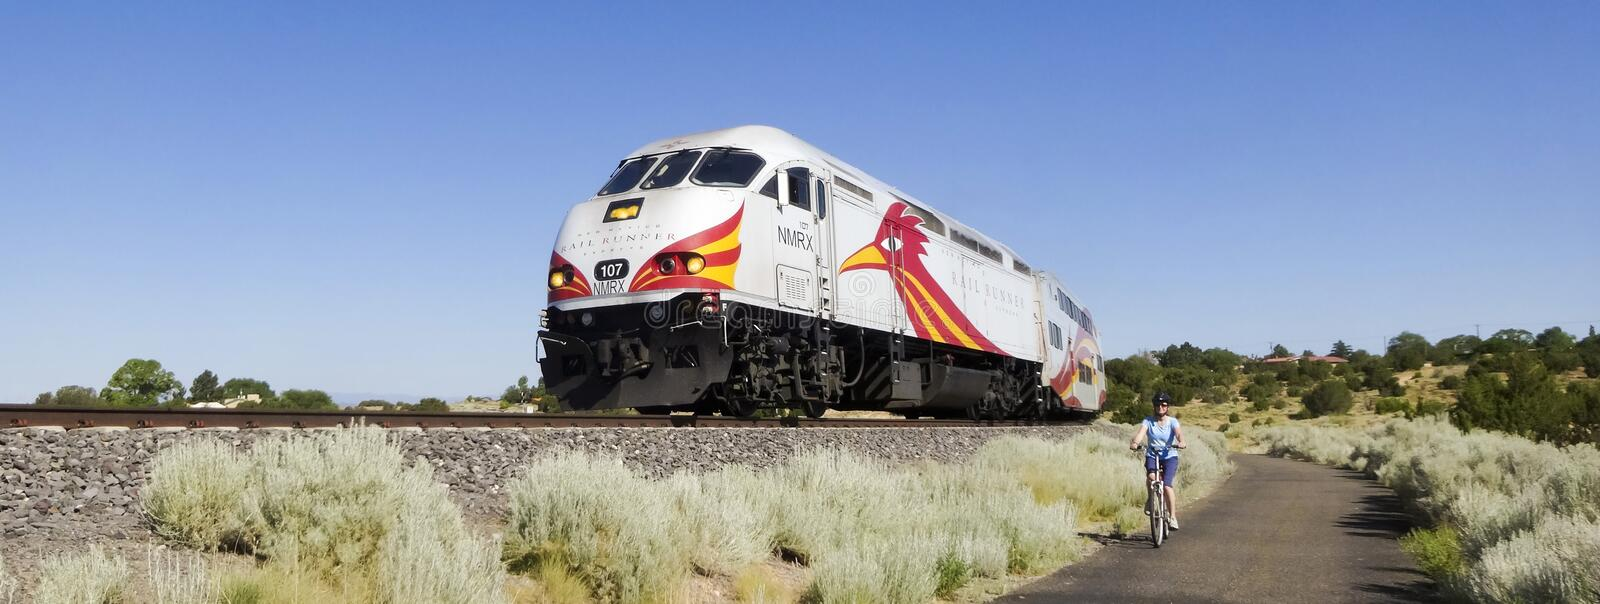 A Woman Cyclist Races the Rail Runner Express stock photo